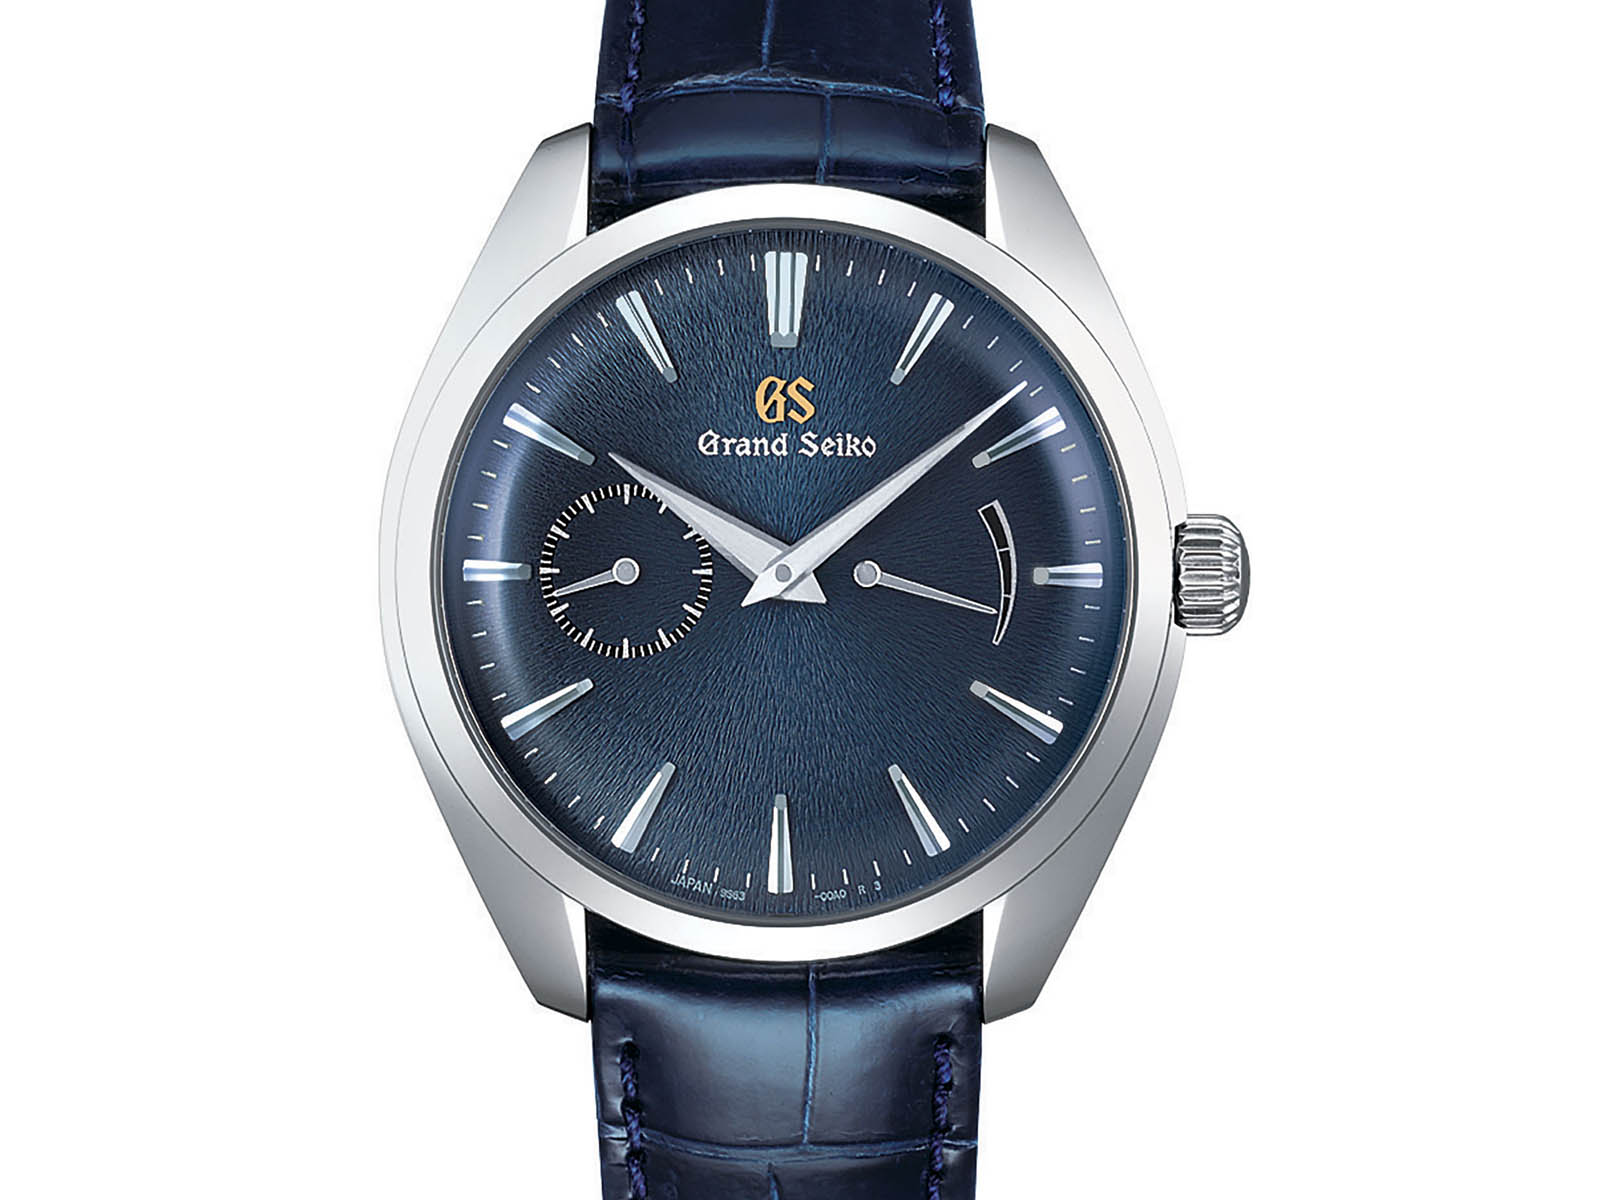 sbgk005-grand-seiko-elegance-collection-3.jpg